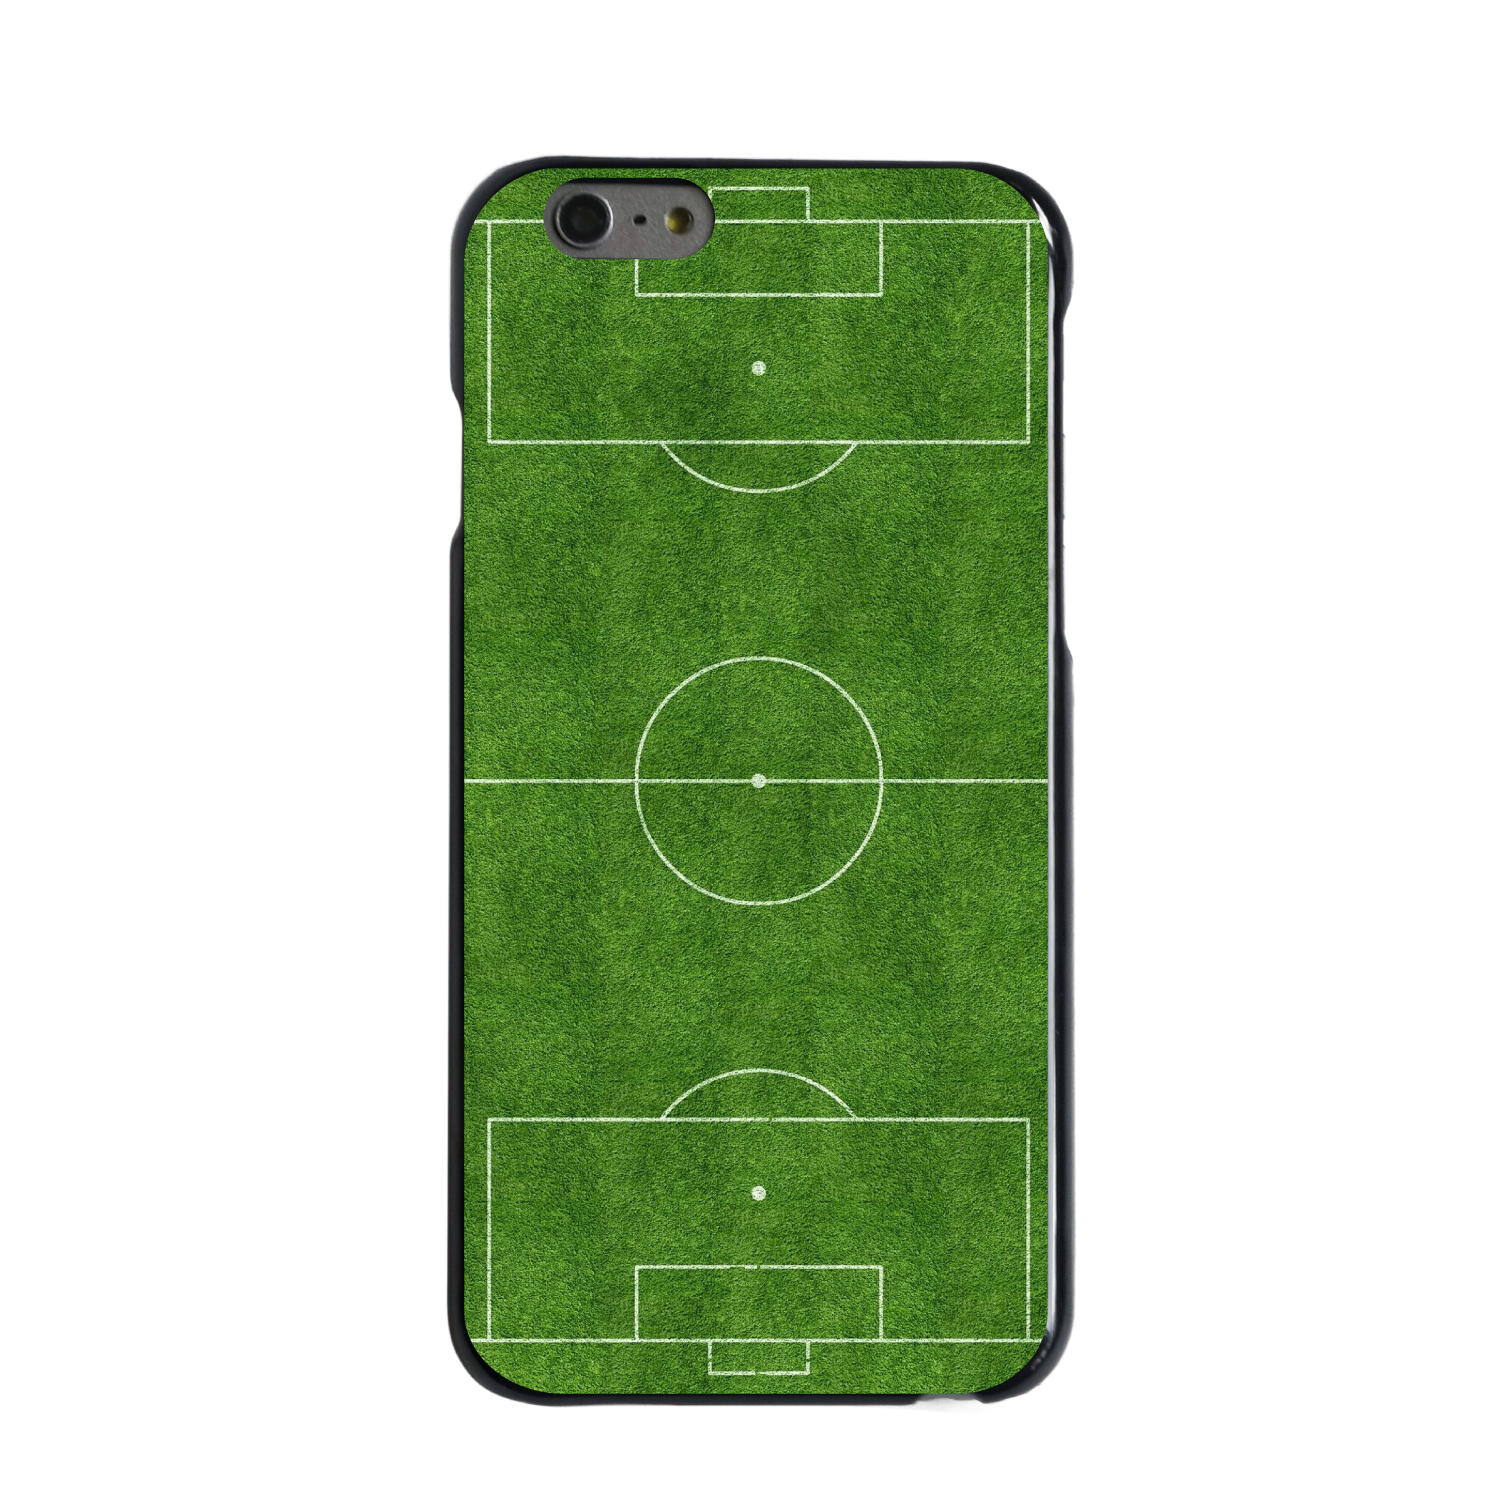 "CUSTOM Black Hard Plastic Snap-On Case for Apple iPhone 6 PLUS / 6S PLUS (5.5"" Screen) - Soccer Field Layout"